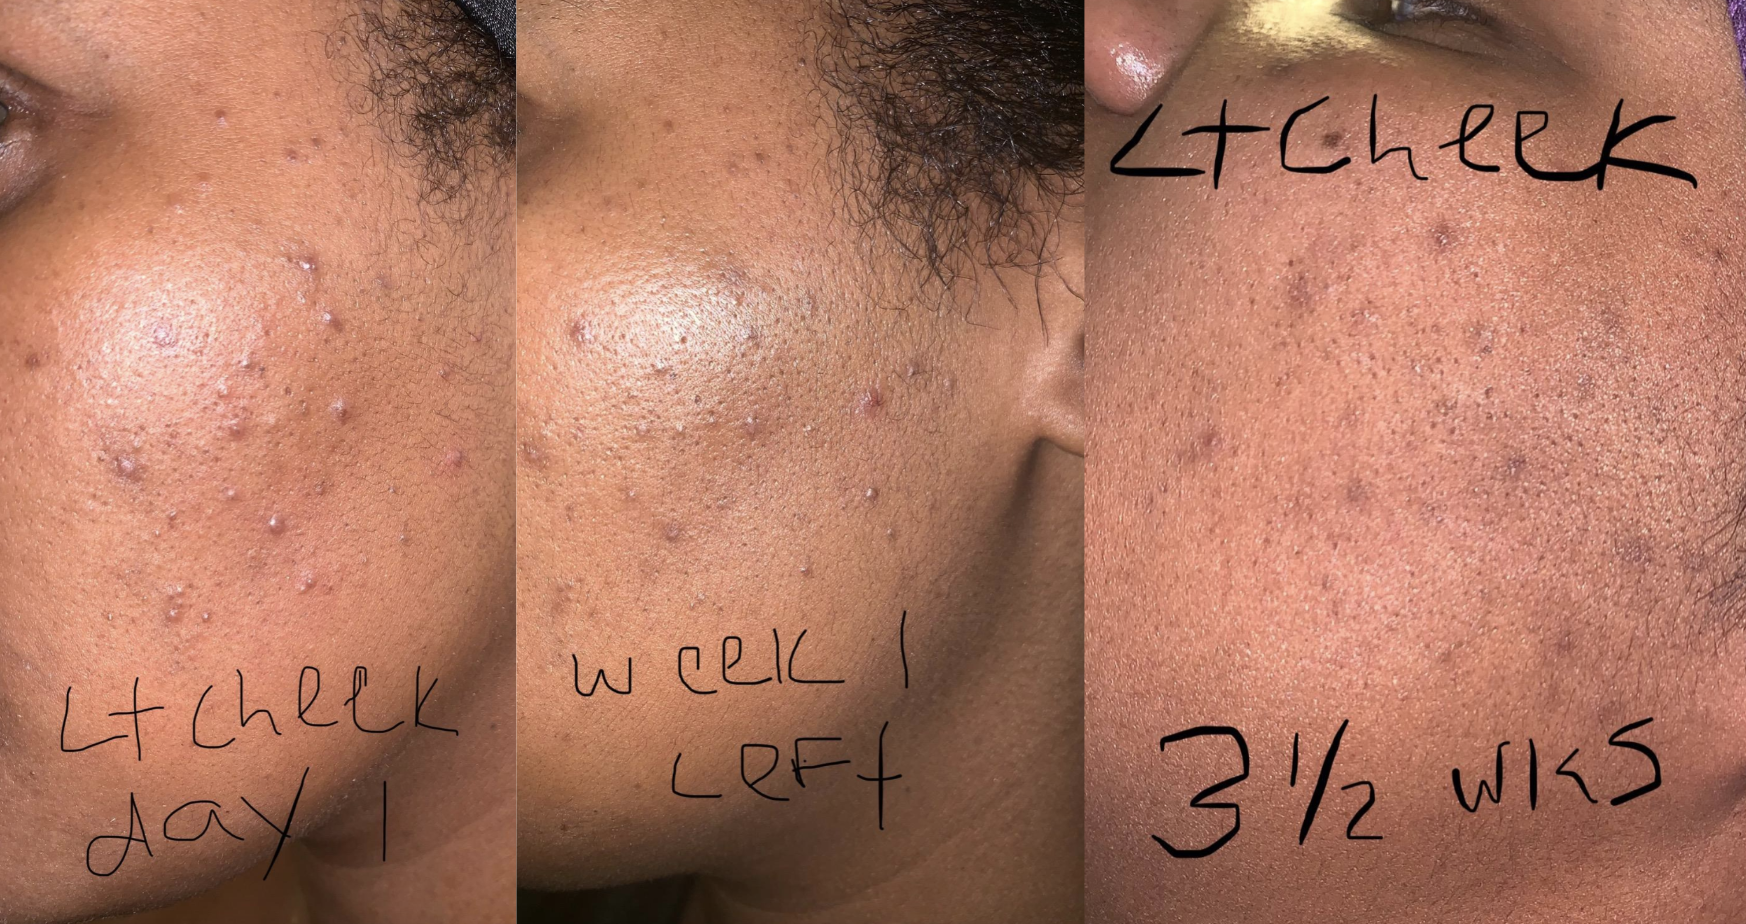 "on the left a person with moderate acne labeled ""lt cheek day 1"" and in the middle the same person with slightly less acne labeled ""week 1 left"" and in the right the same person with significantly less acne labeled ""lt cheek 3 1/2 wks"""